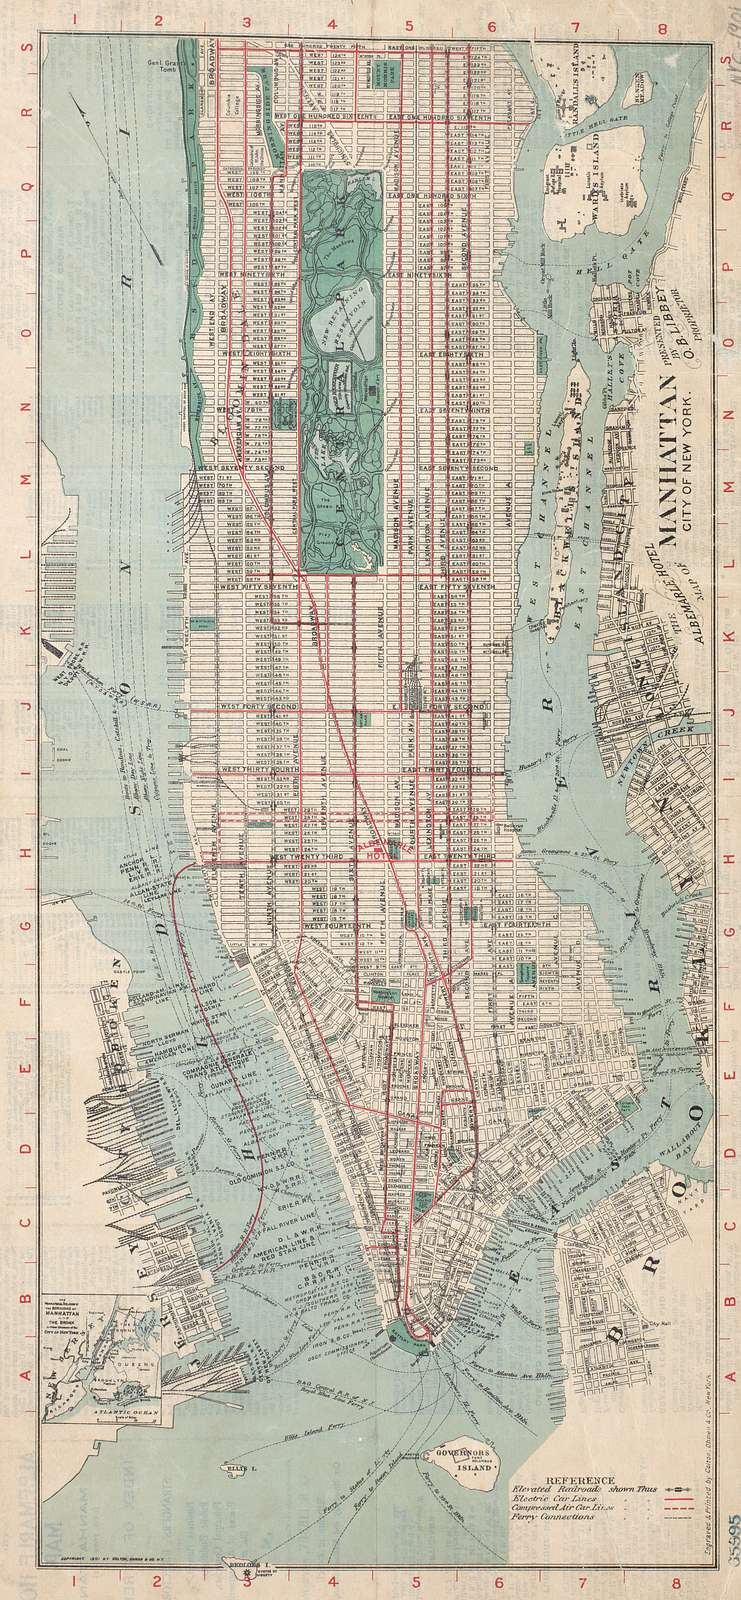 The Albemarle Hotel map of Manhattan, New York City : with index of streets and strangers' directory to business houses, public buildings, principal churches, places of amusement, etc. etc.